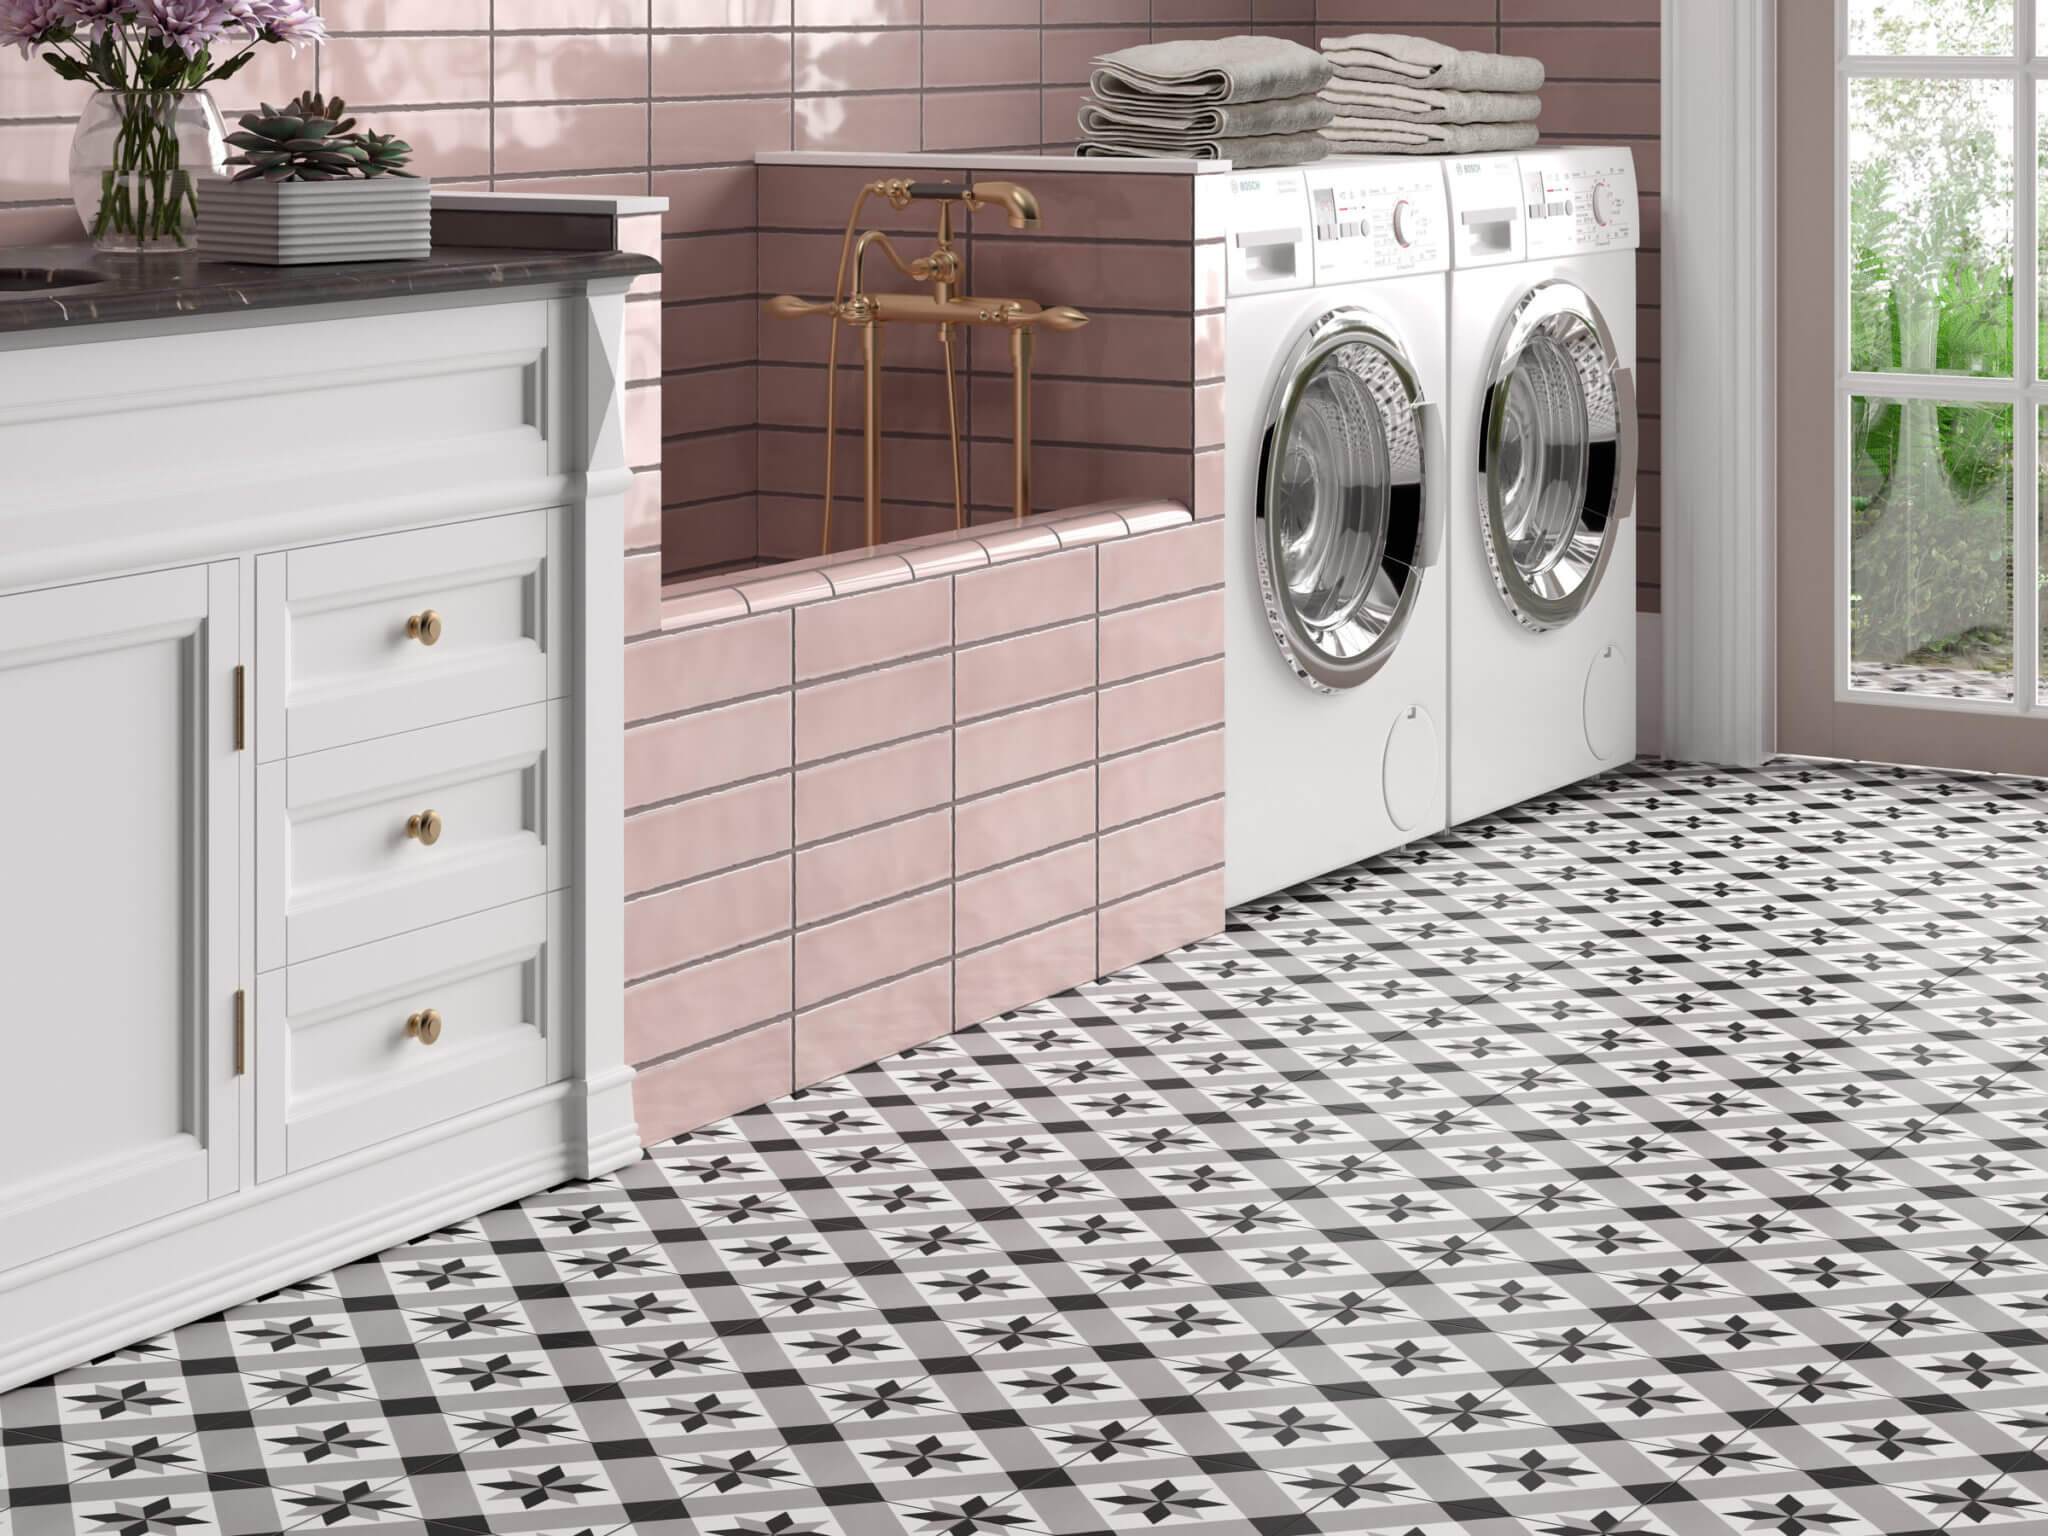 Laundry room with pink tile dog shower and black and white graphic tile flooring